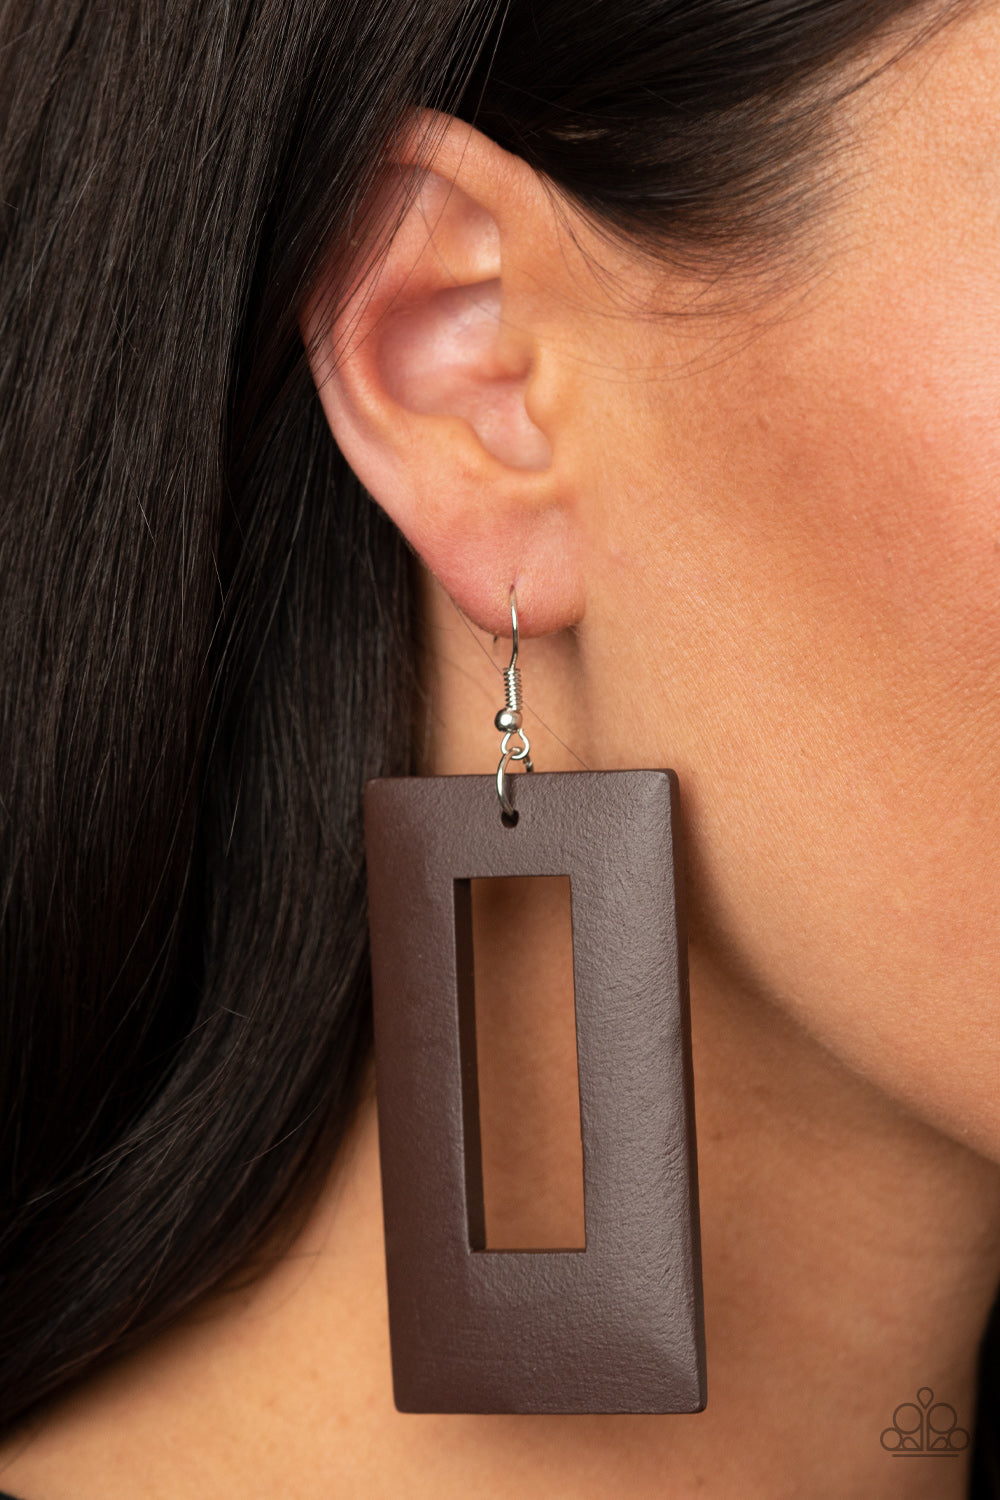 Paparazzi Jewelry & Accessories - Totally Framed - Brown Earrings. Bling By Titia Boutique